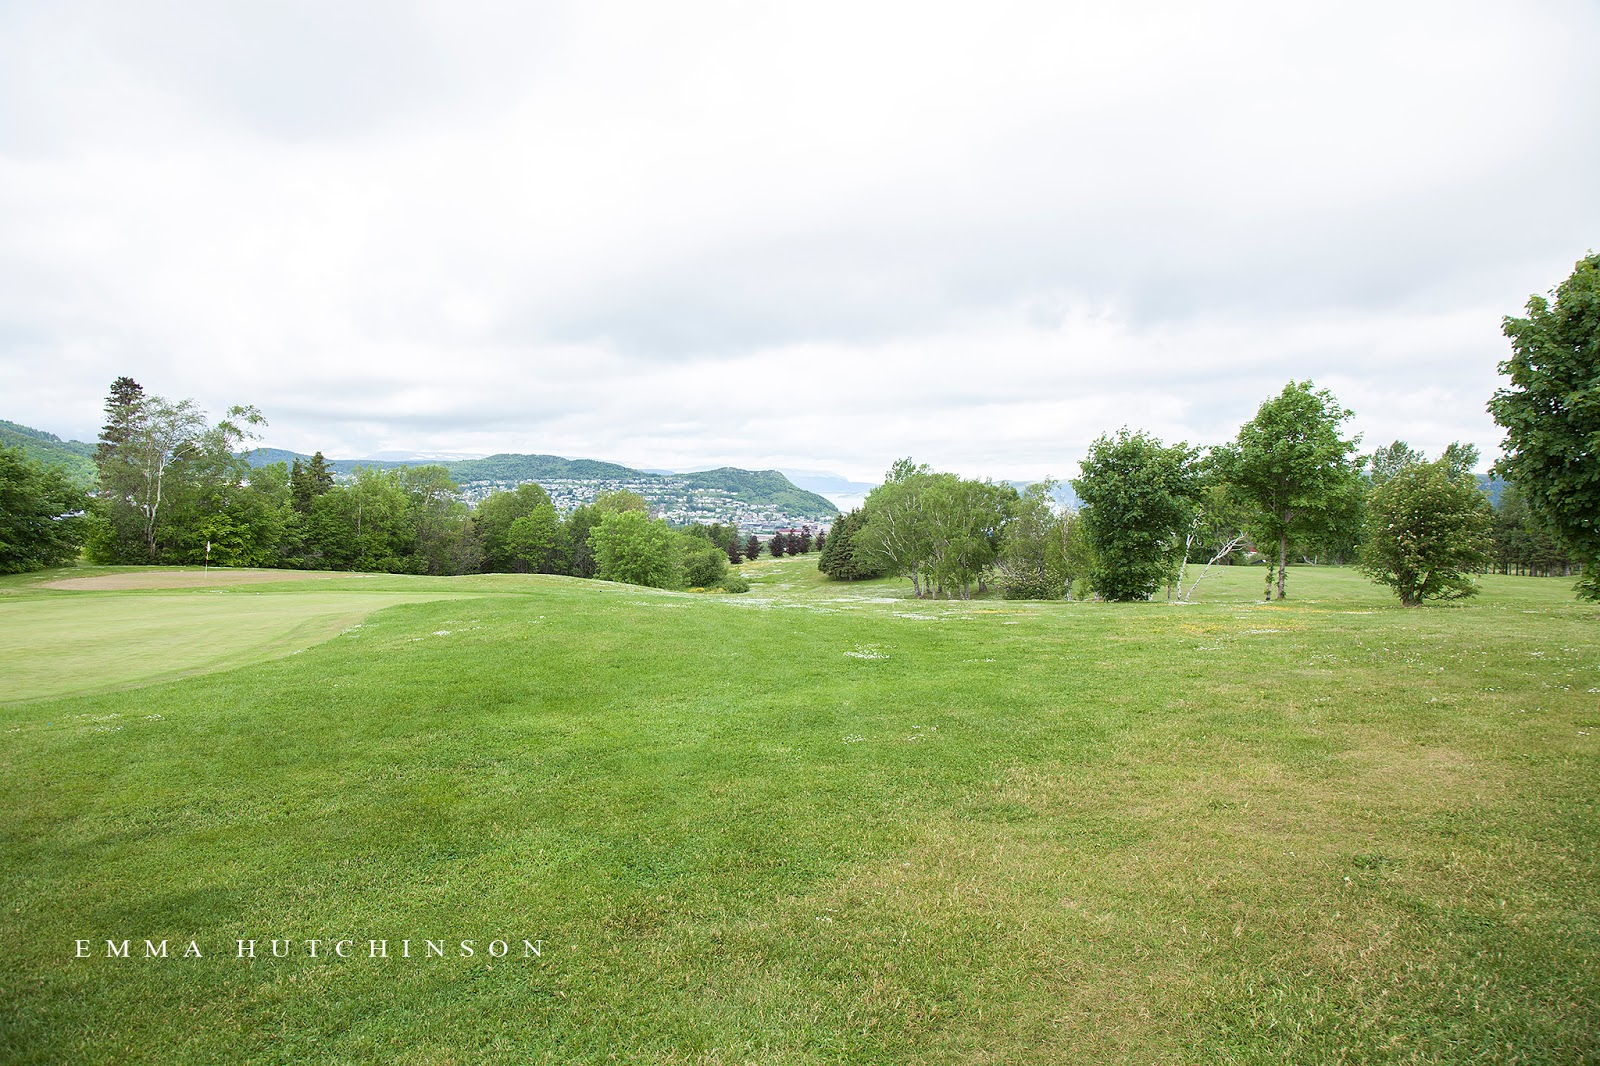 The wedding ceremony took place at the Blomidon Golf and Country Club in Corner Brook, Newfoundland